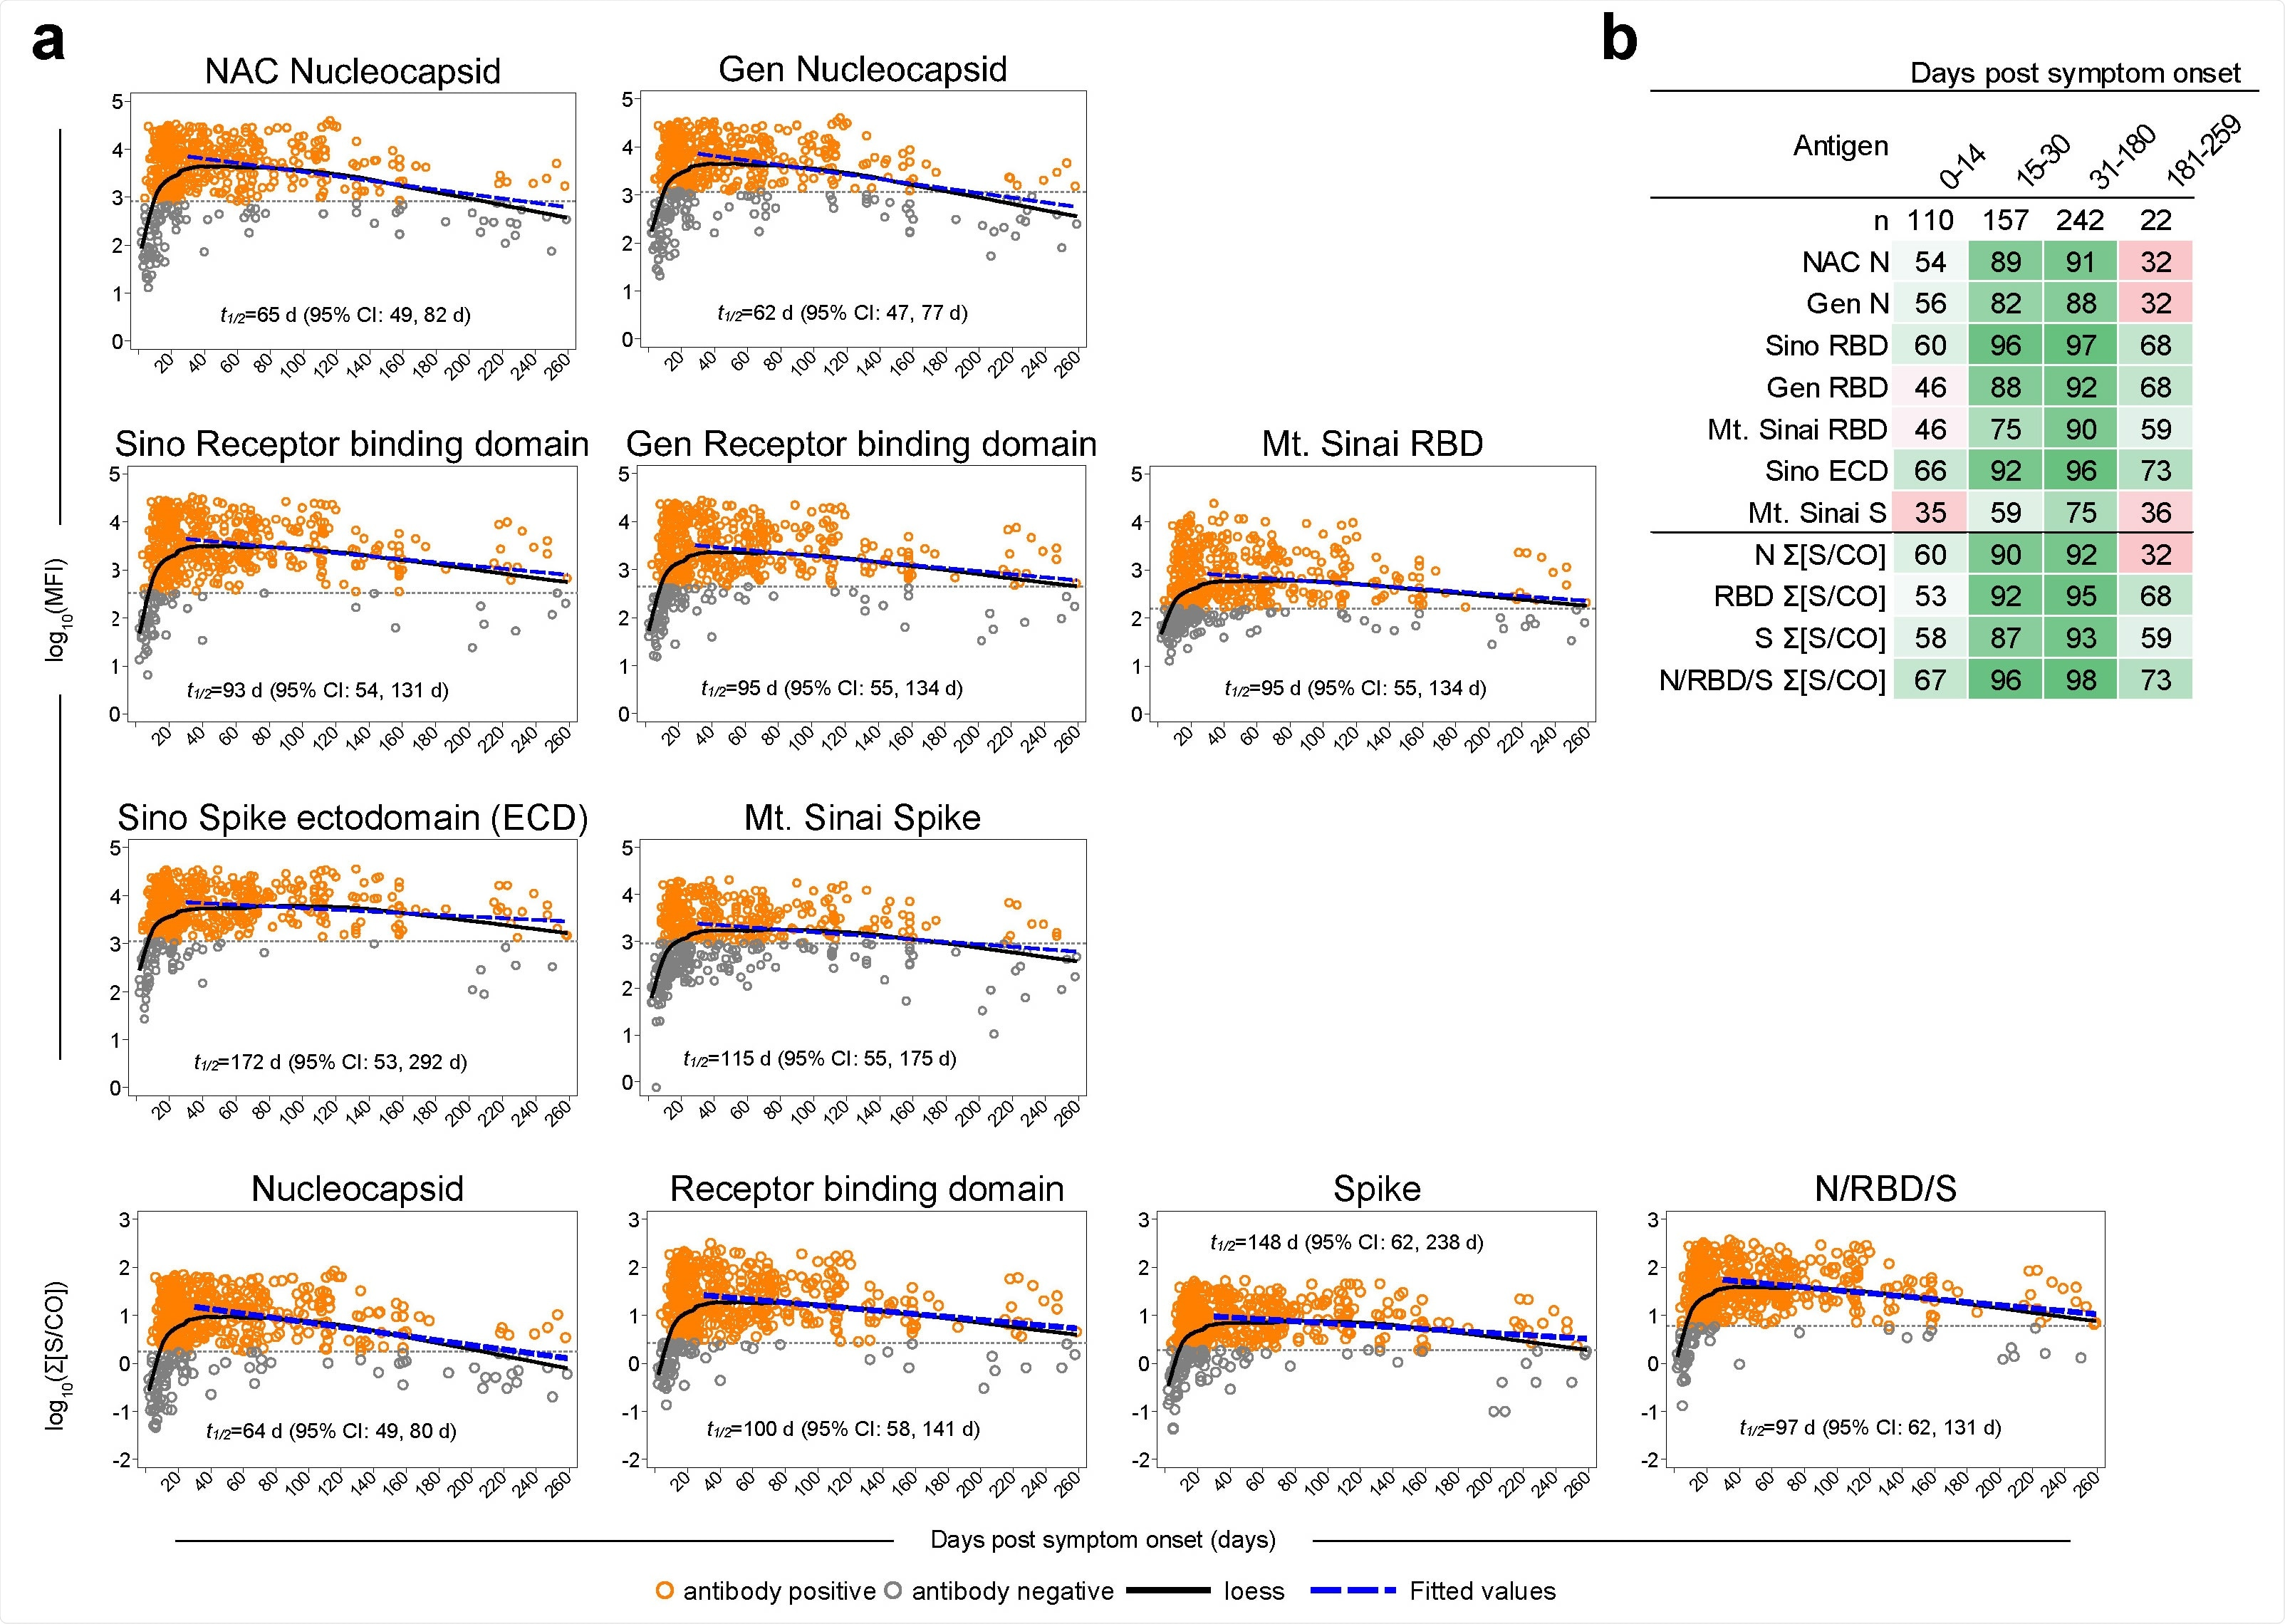 SARS-CoV-2-specific IgG responses in saliva over time. (a) Log10 median fluorescence intensity (MFI) of SARS-CoV-2-specific IgG responses to nucleocapsid (N), receptor binding domain (RBD), spike (S), and Σ[S/CO] values among